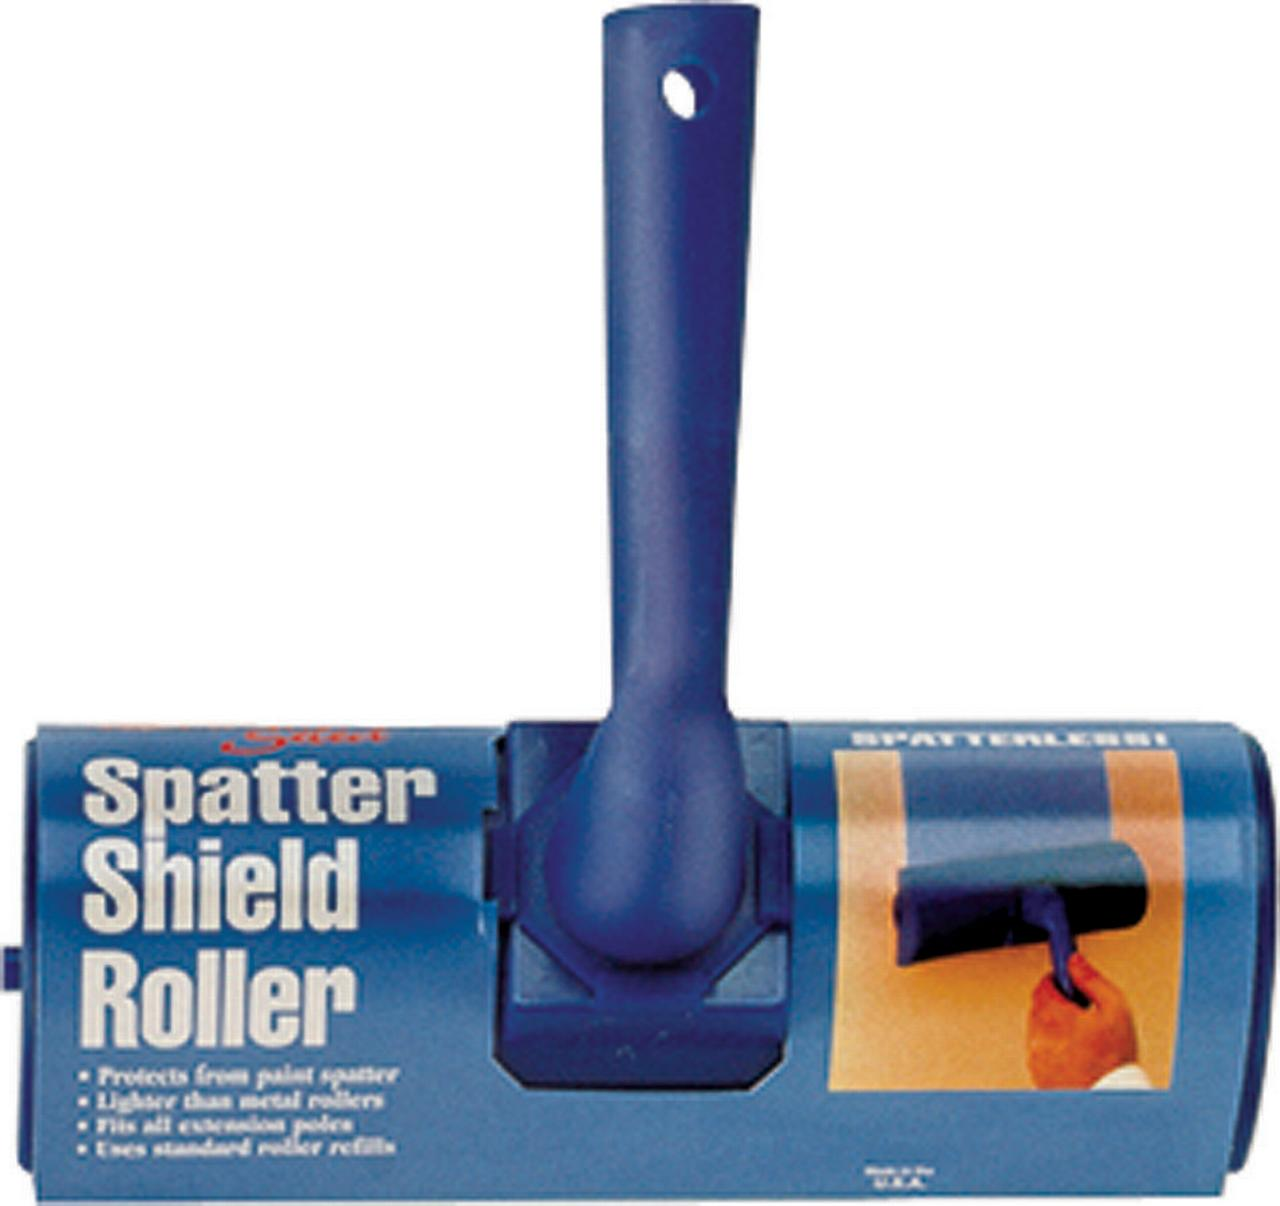 Linzer 7938 Threaded Grip Paint Splatter Guard, 3/8 in Nap, 9 in Cover, Plastic, Blue